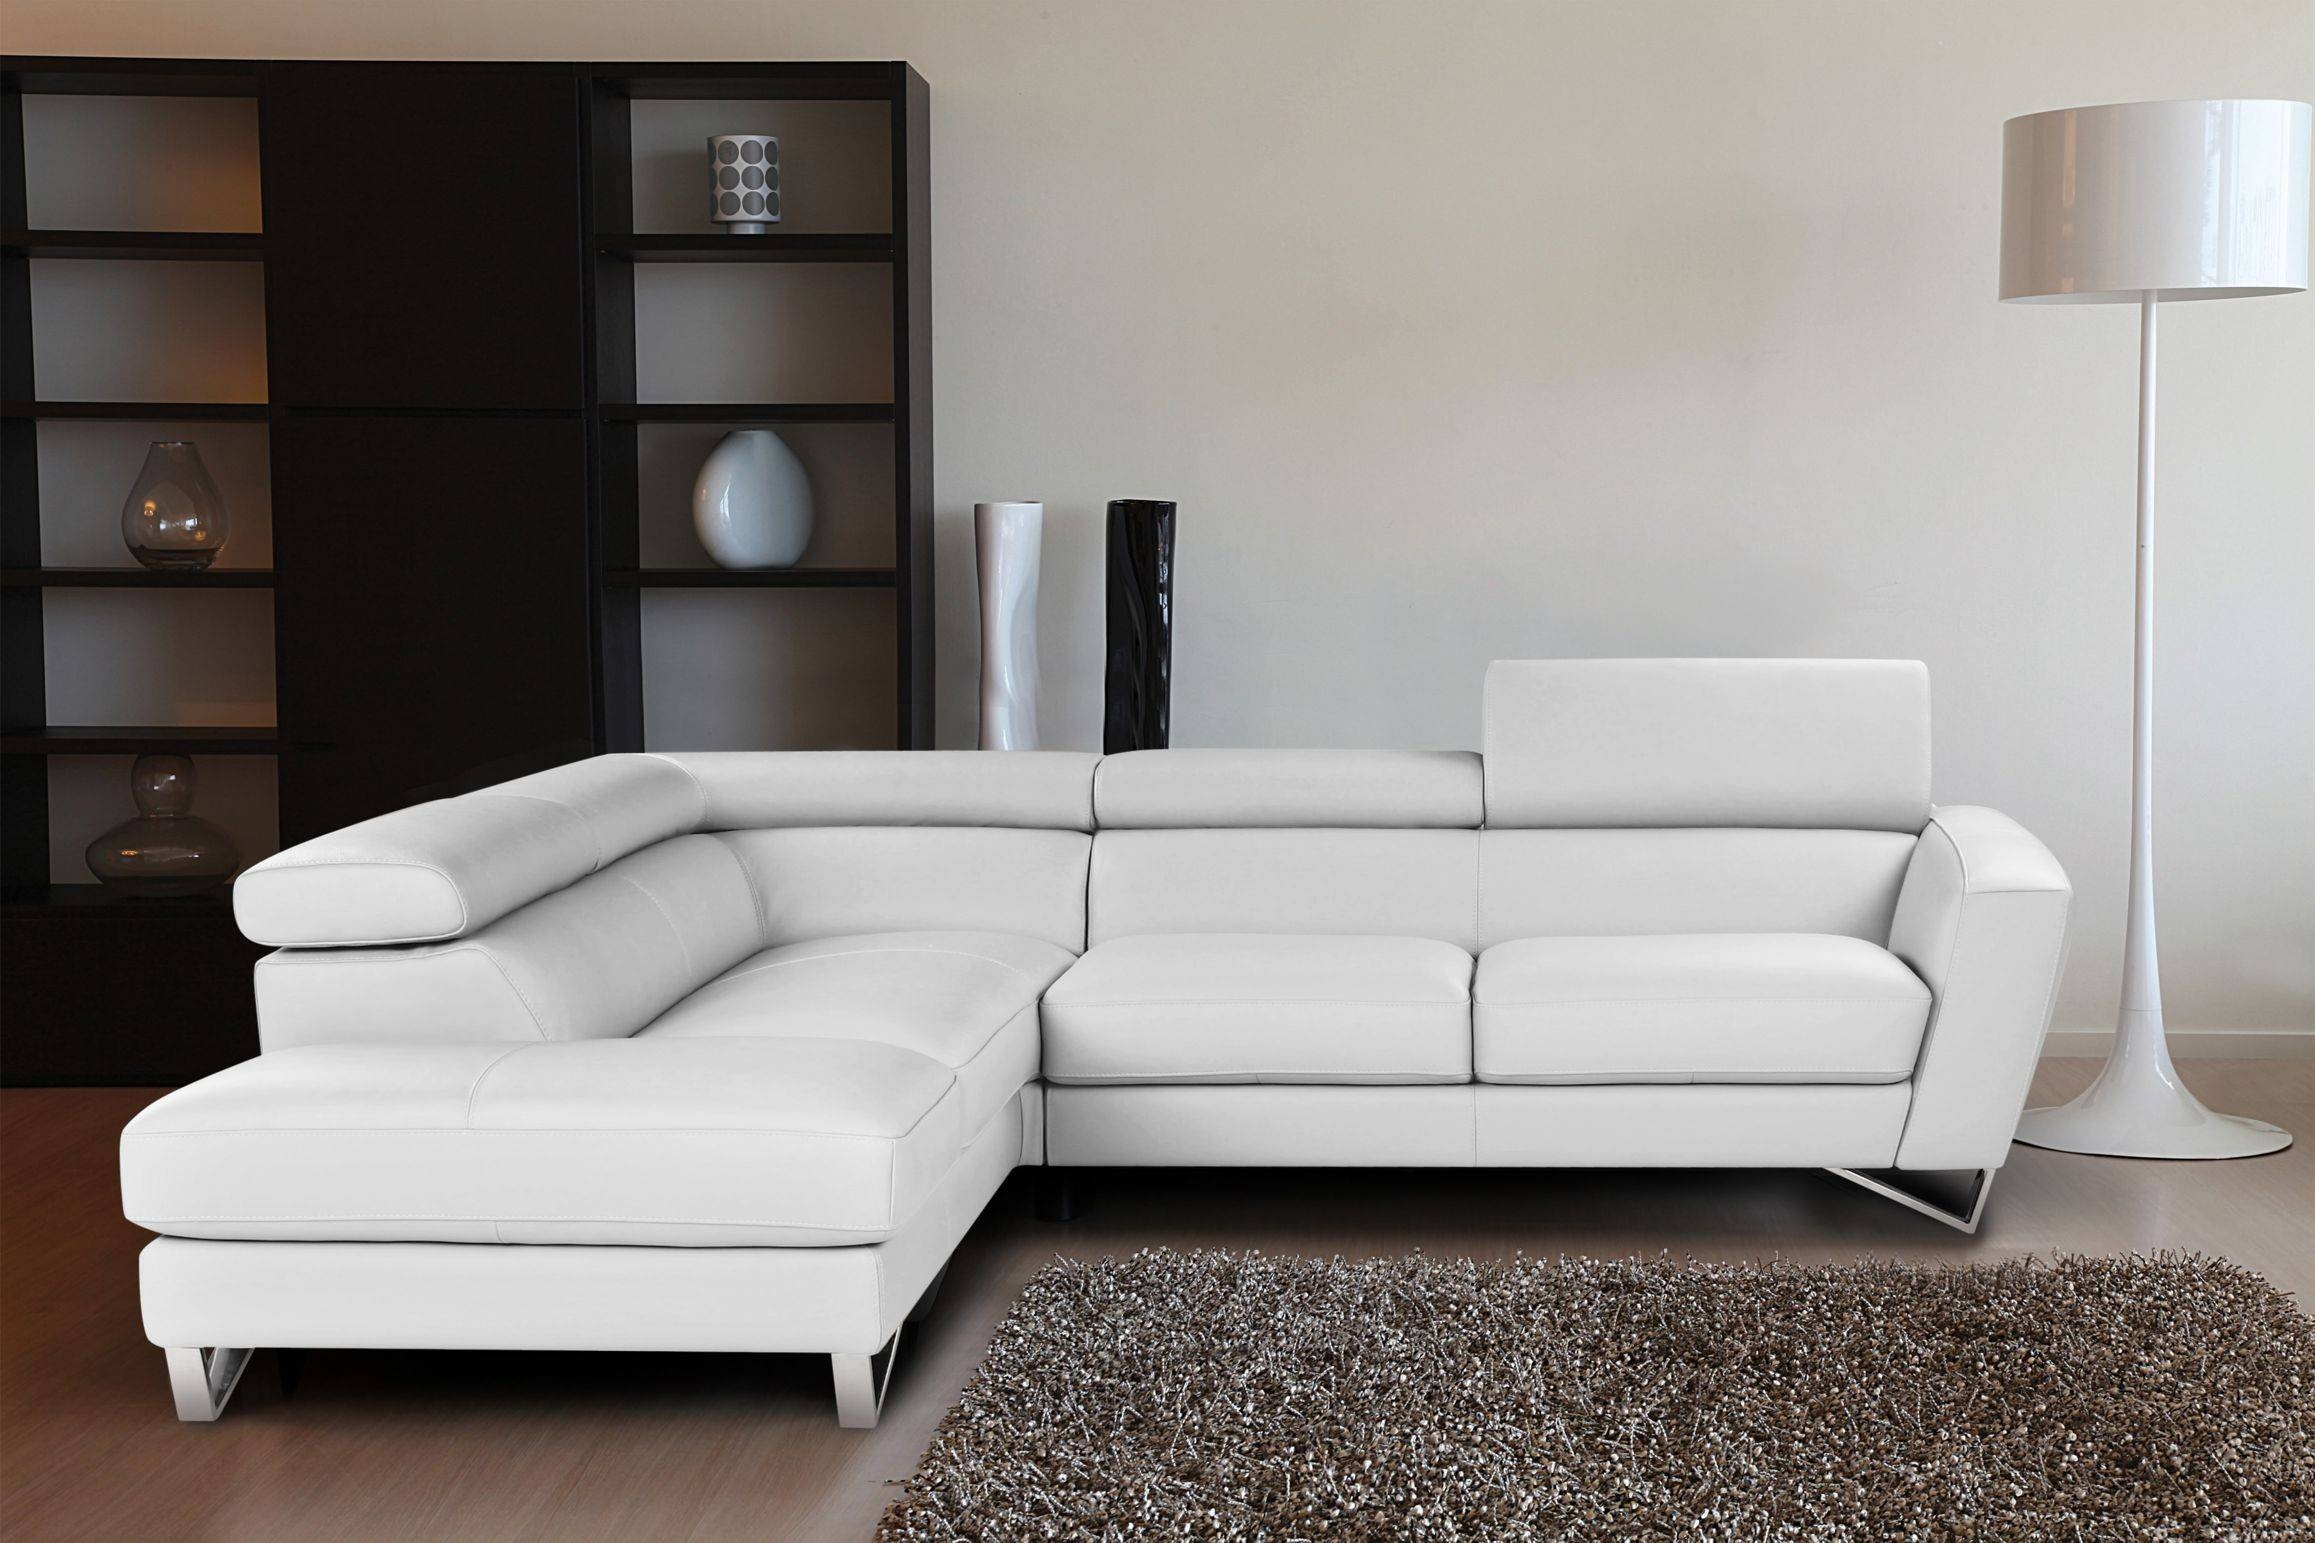 30 Inspirations of Armless Sectional Sofas